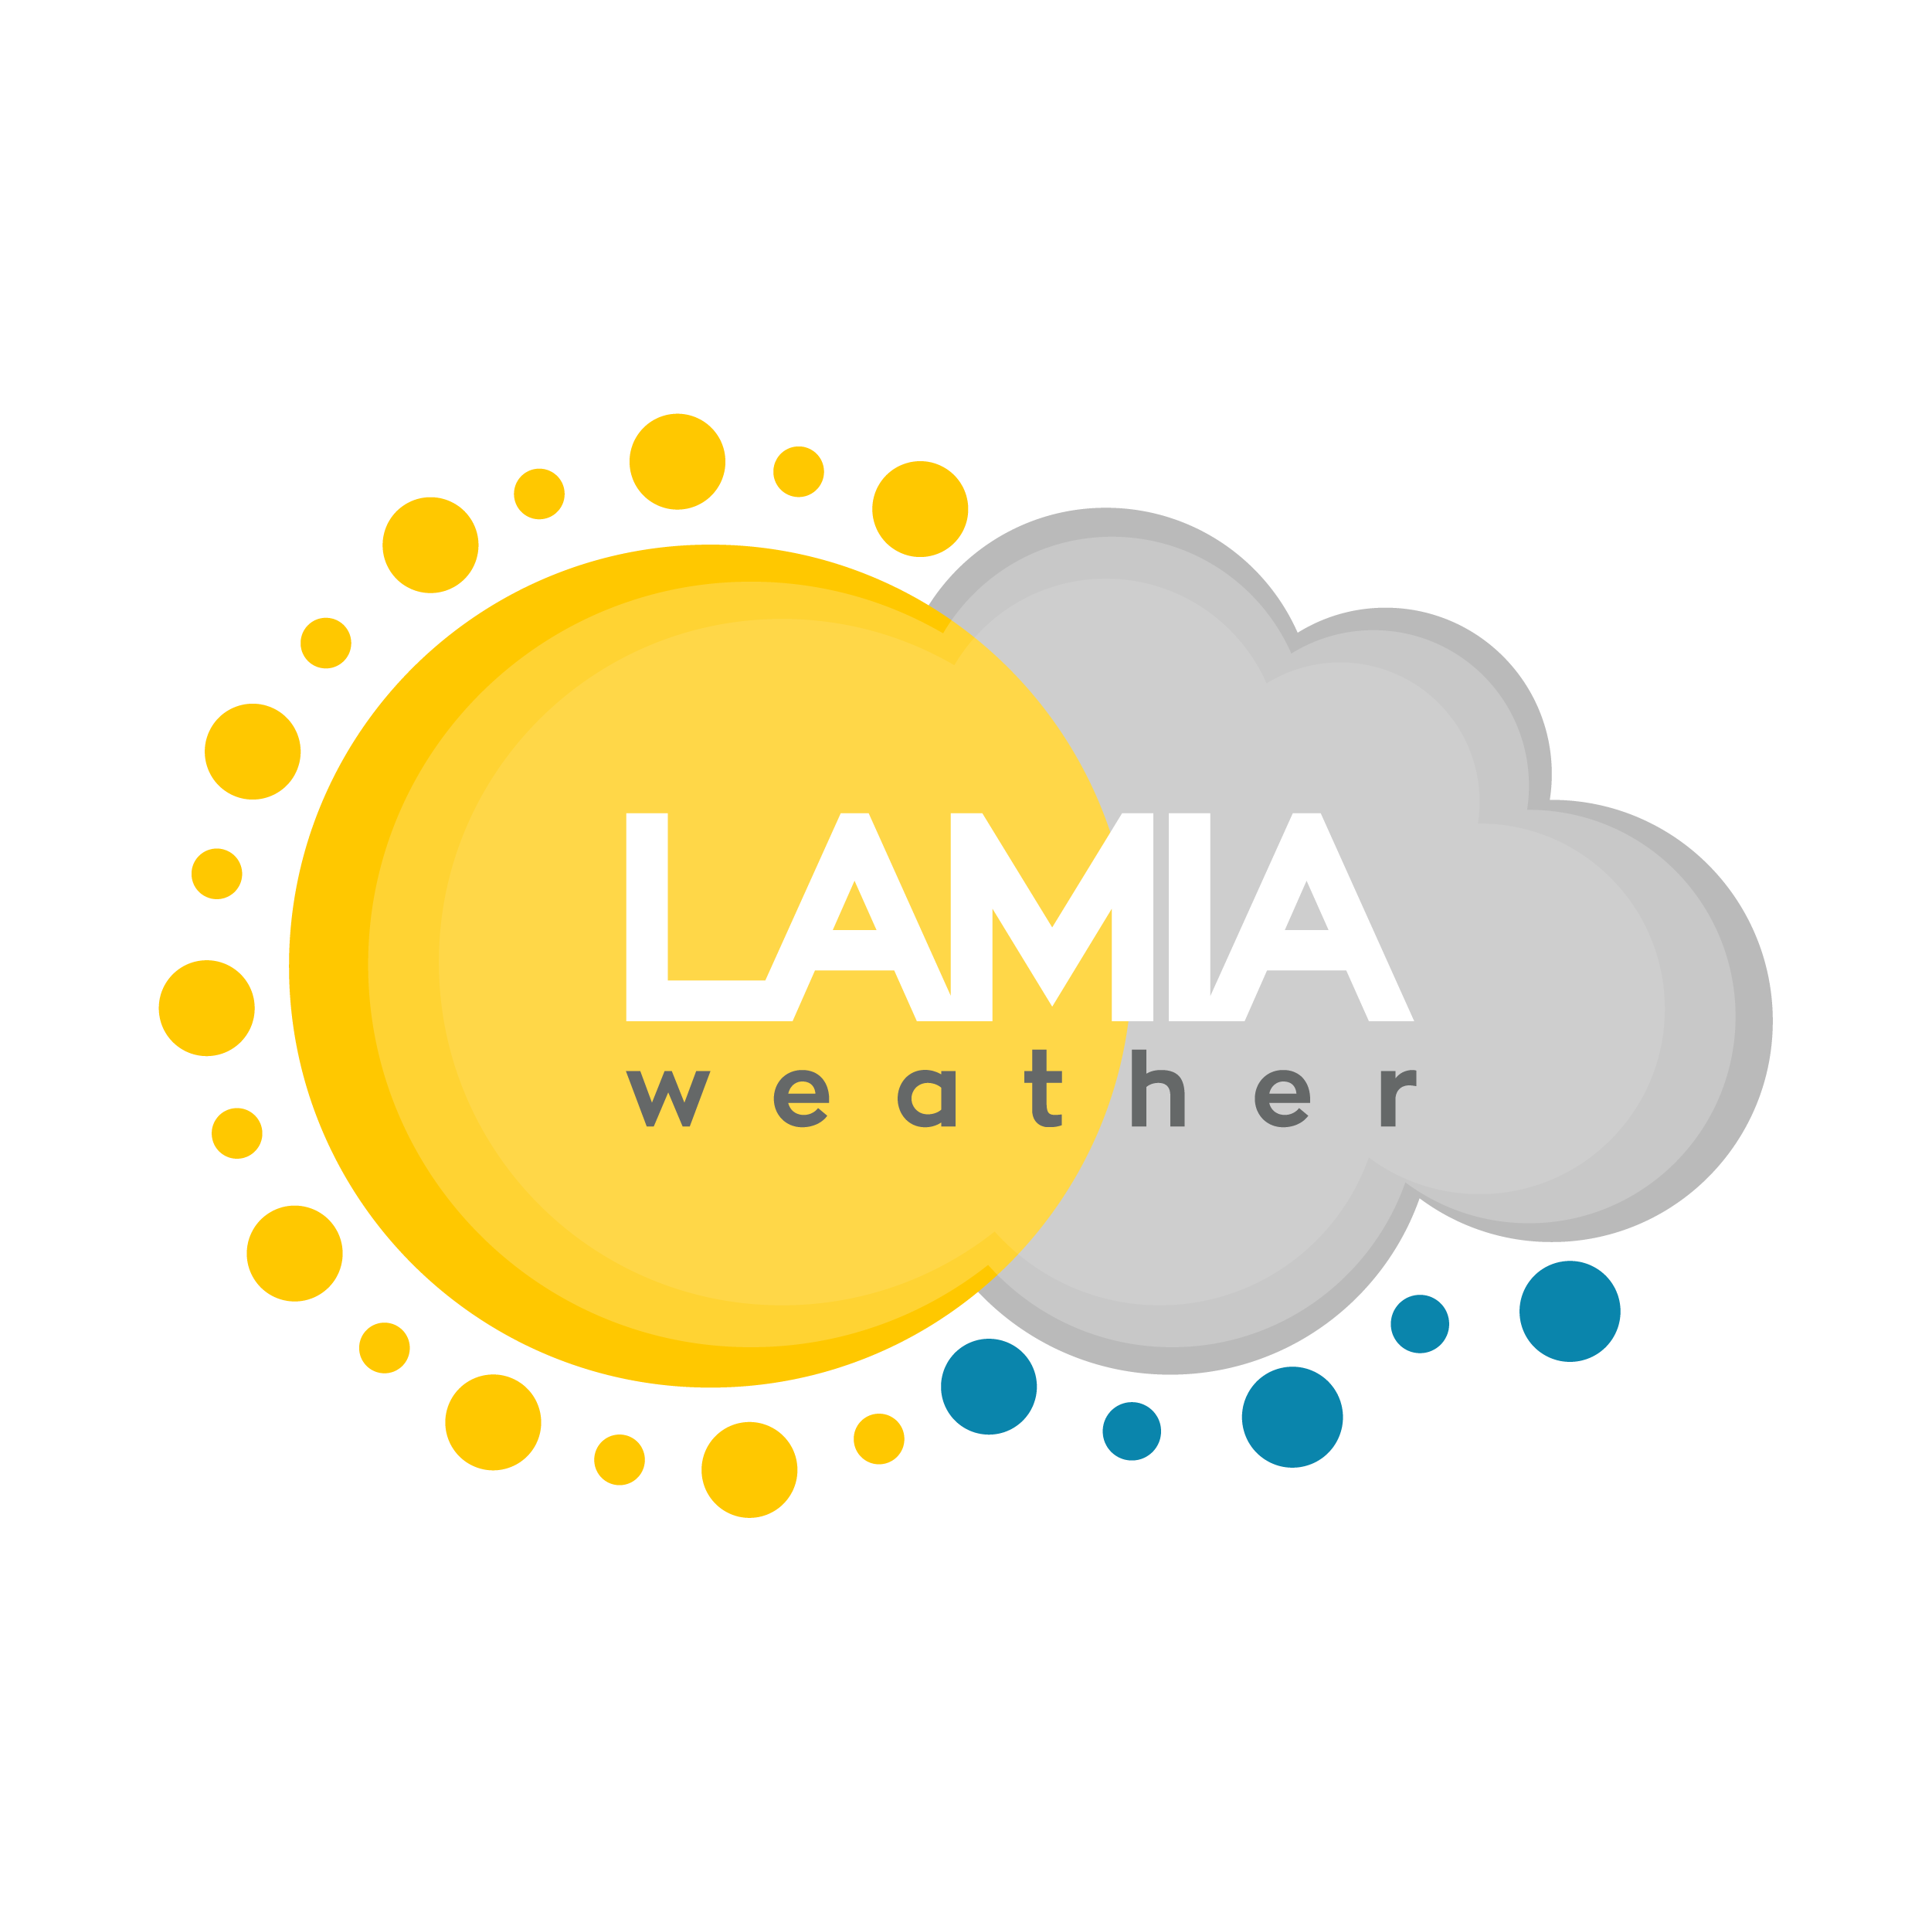 Lamia Weather Station - Ο καιρός στη Λαμία τώρα!